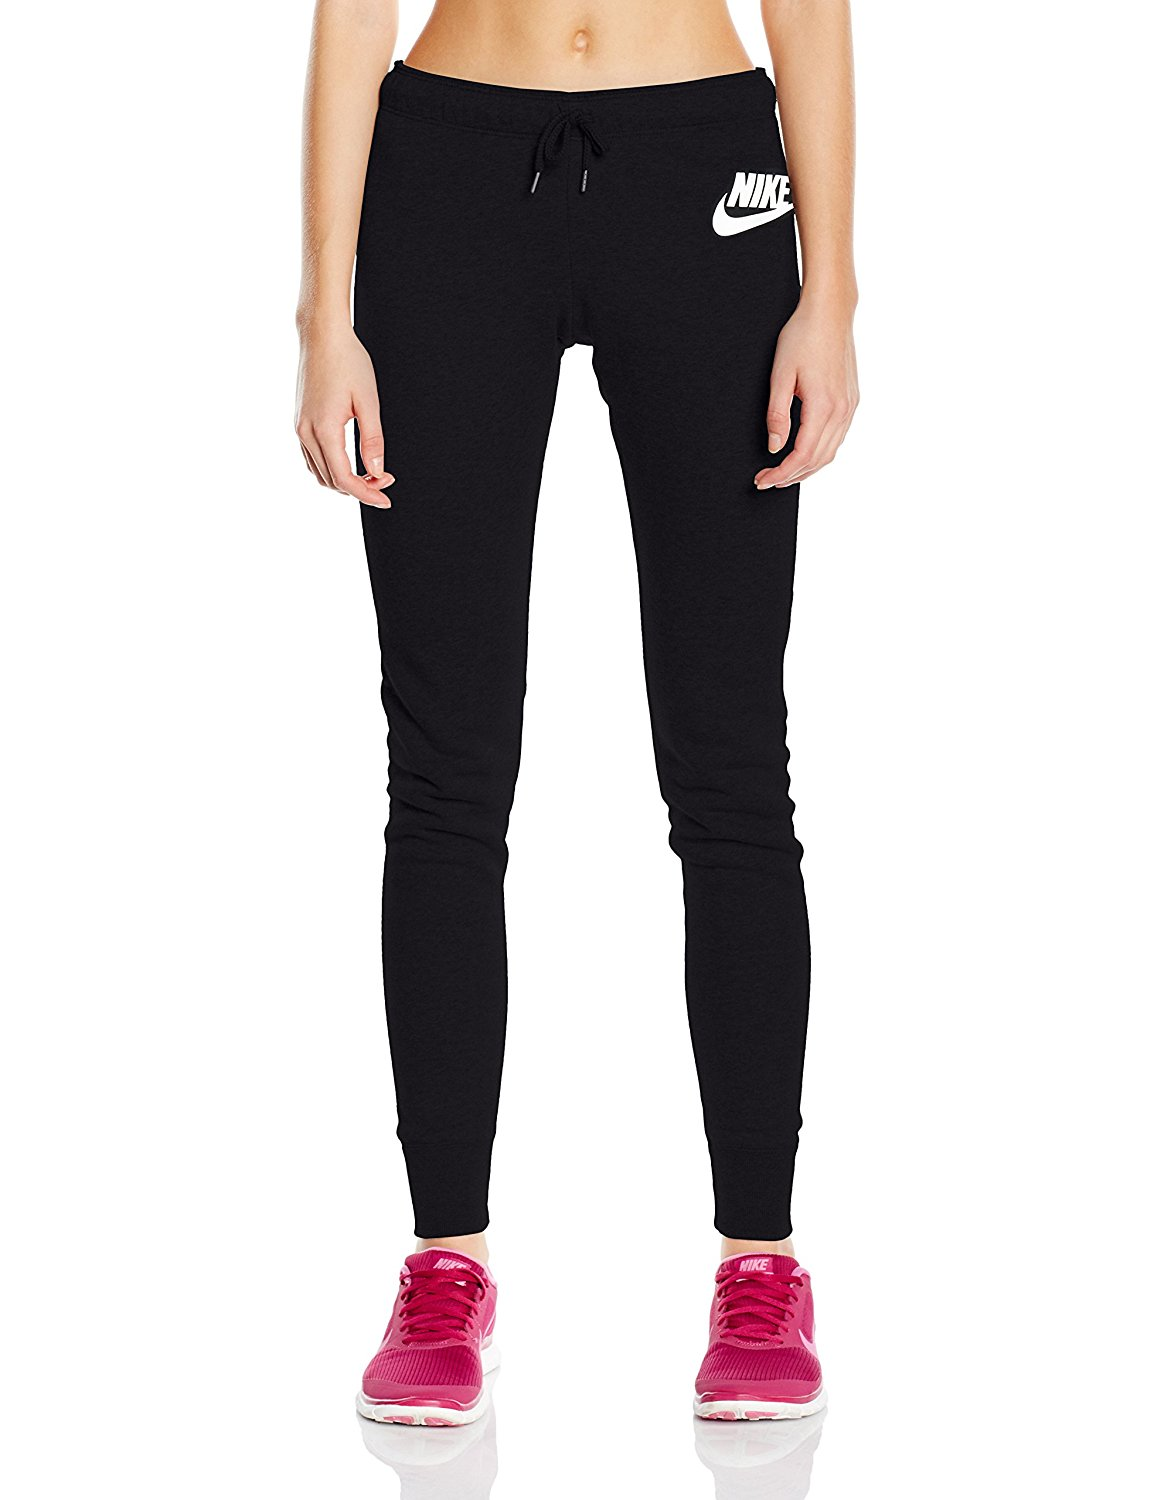 5462d383 Cheap Tight Fit Pants, find Tight Fit Pants deals on line at Alibaba.com